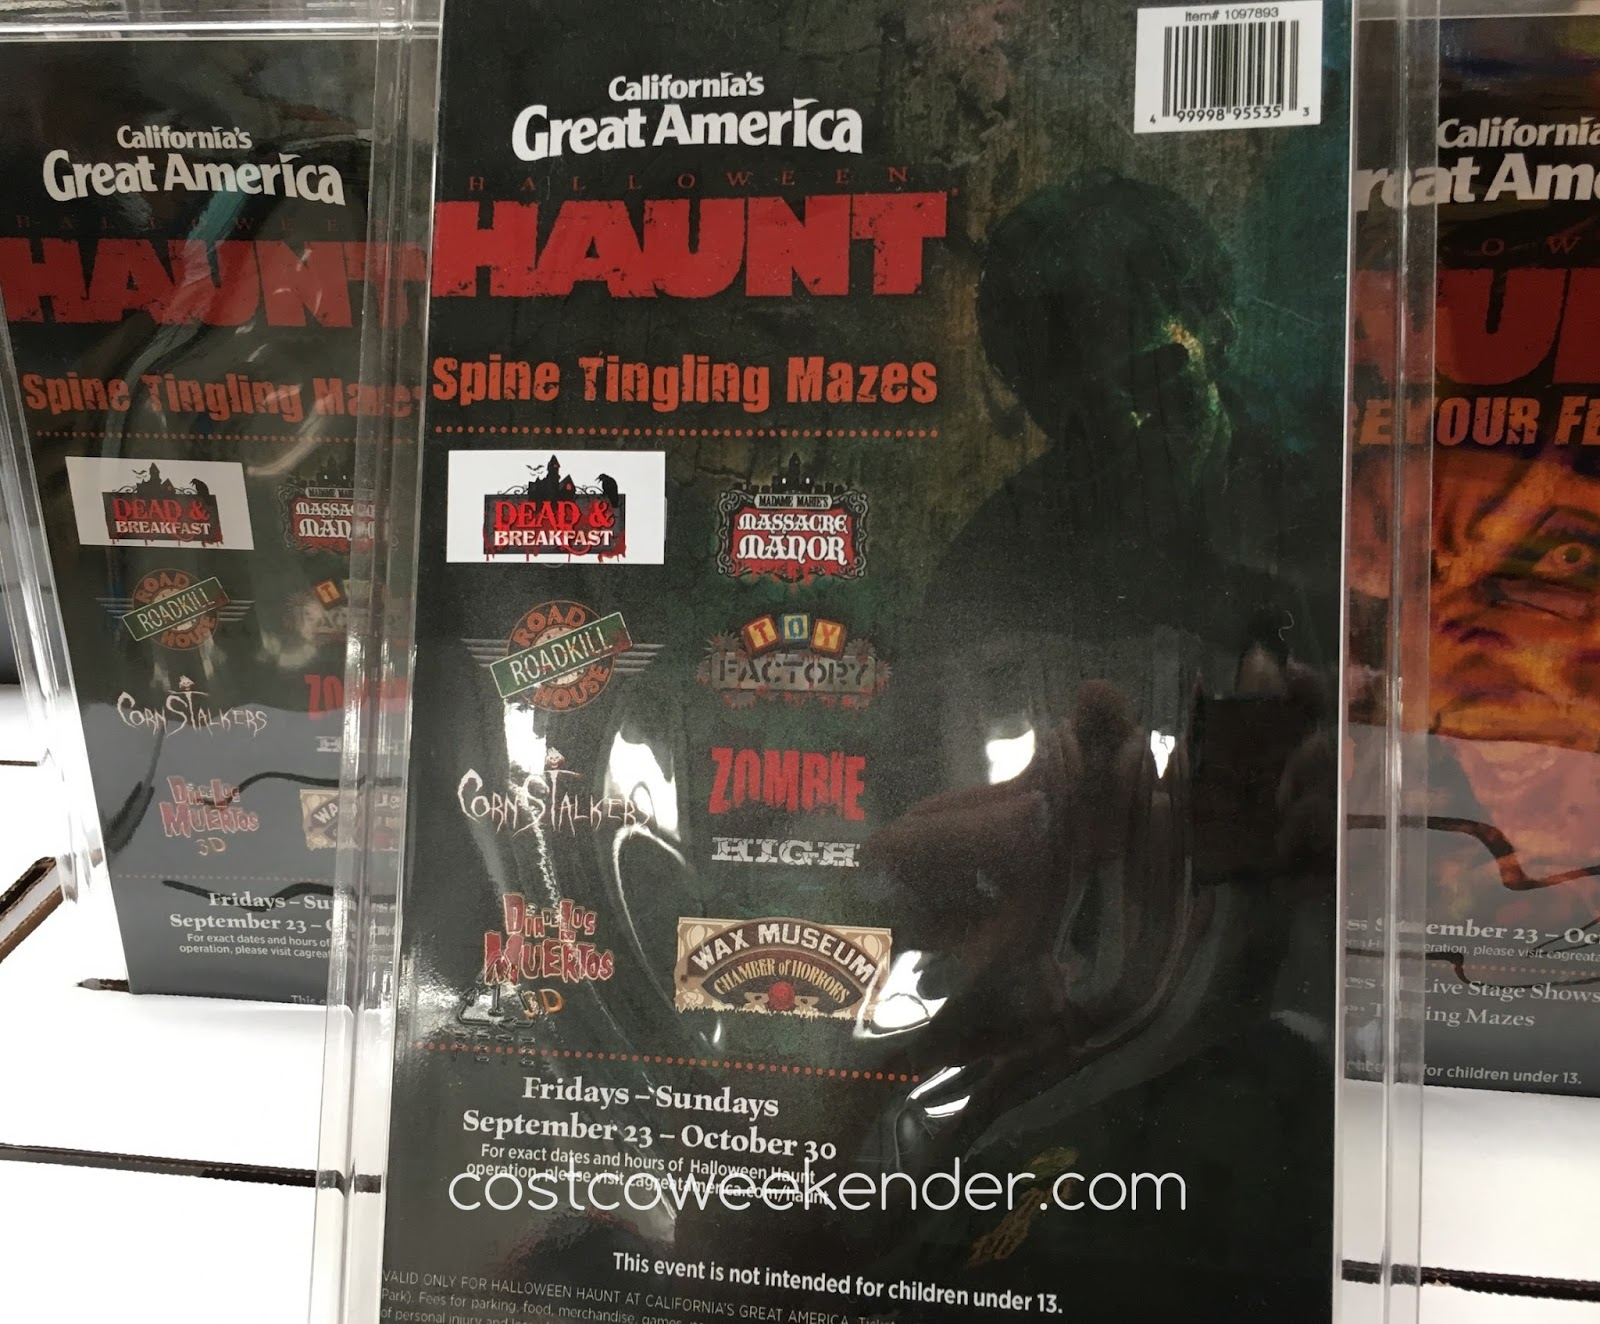 Costco 1097893 - Great America's Halloween Haunt: fun, safe, and scary